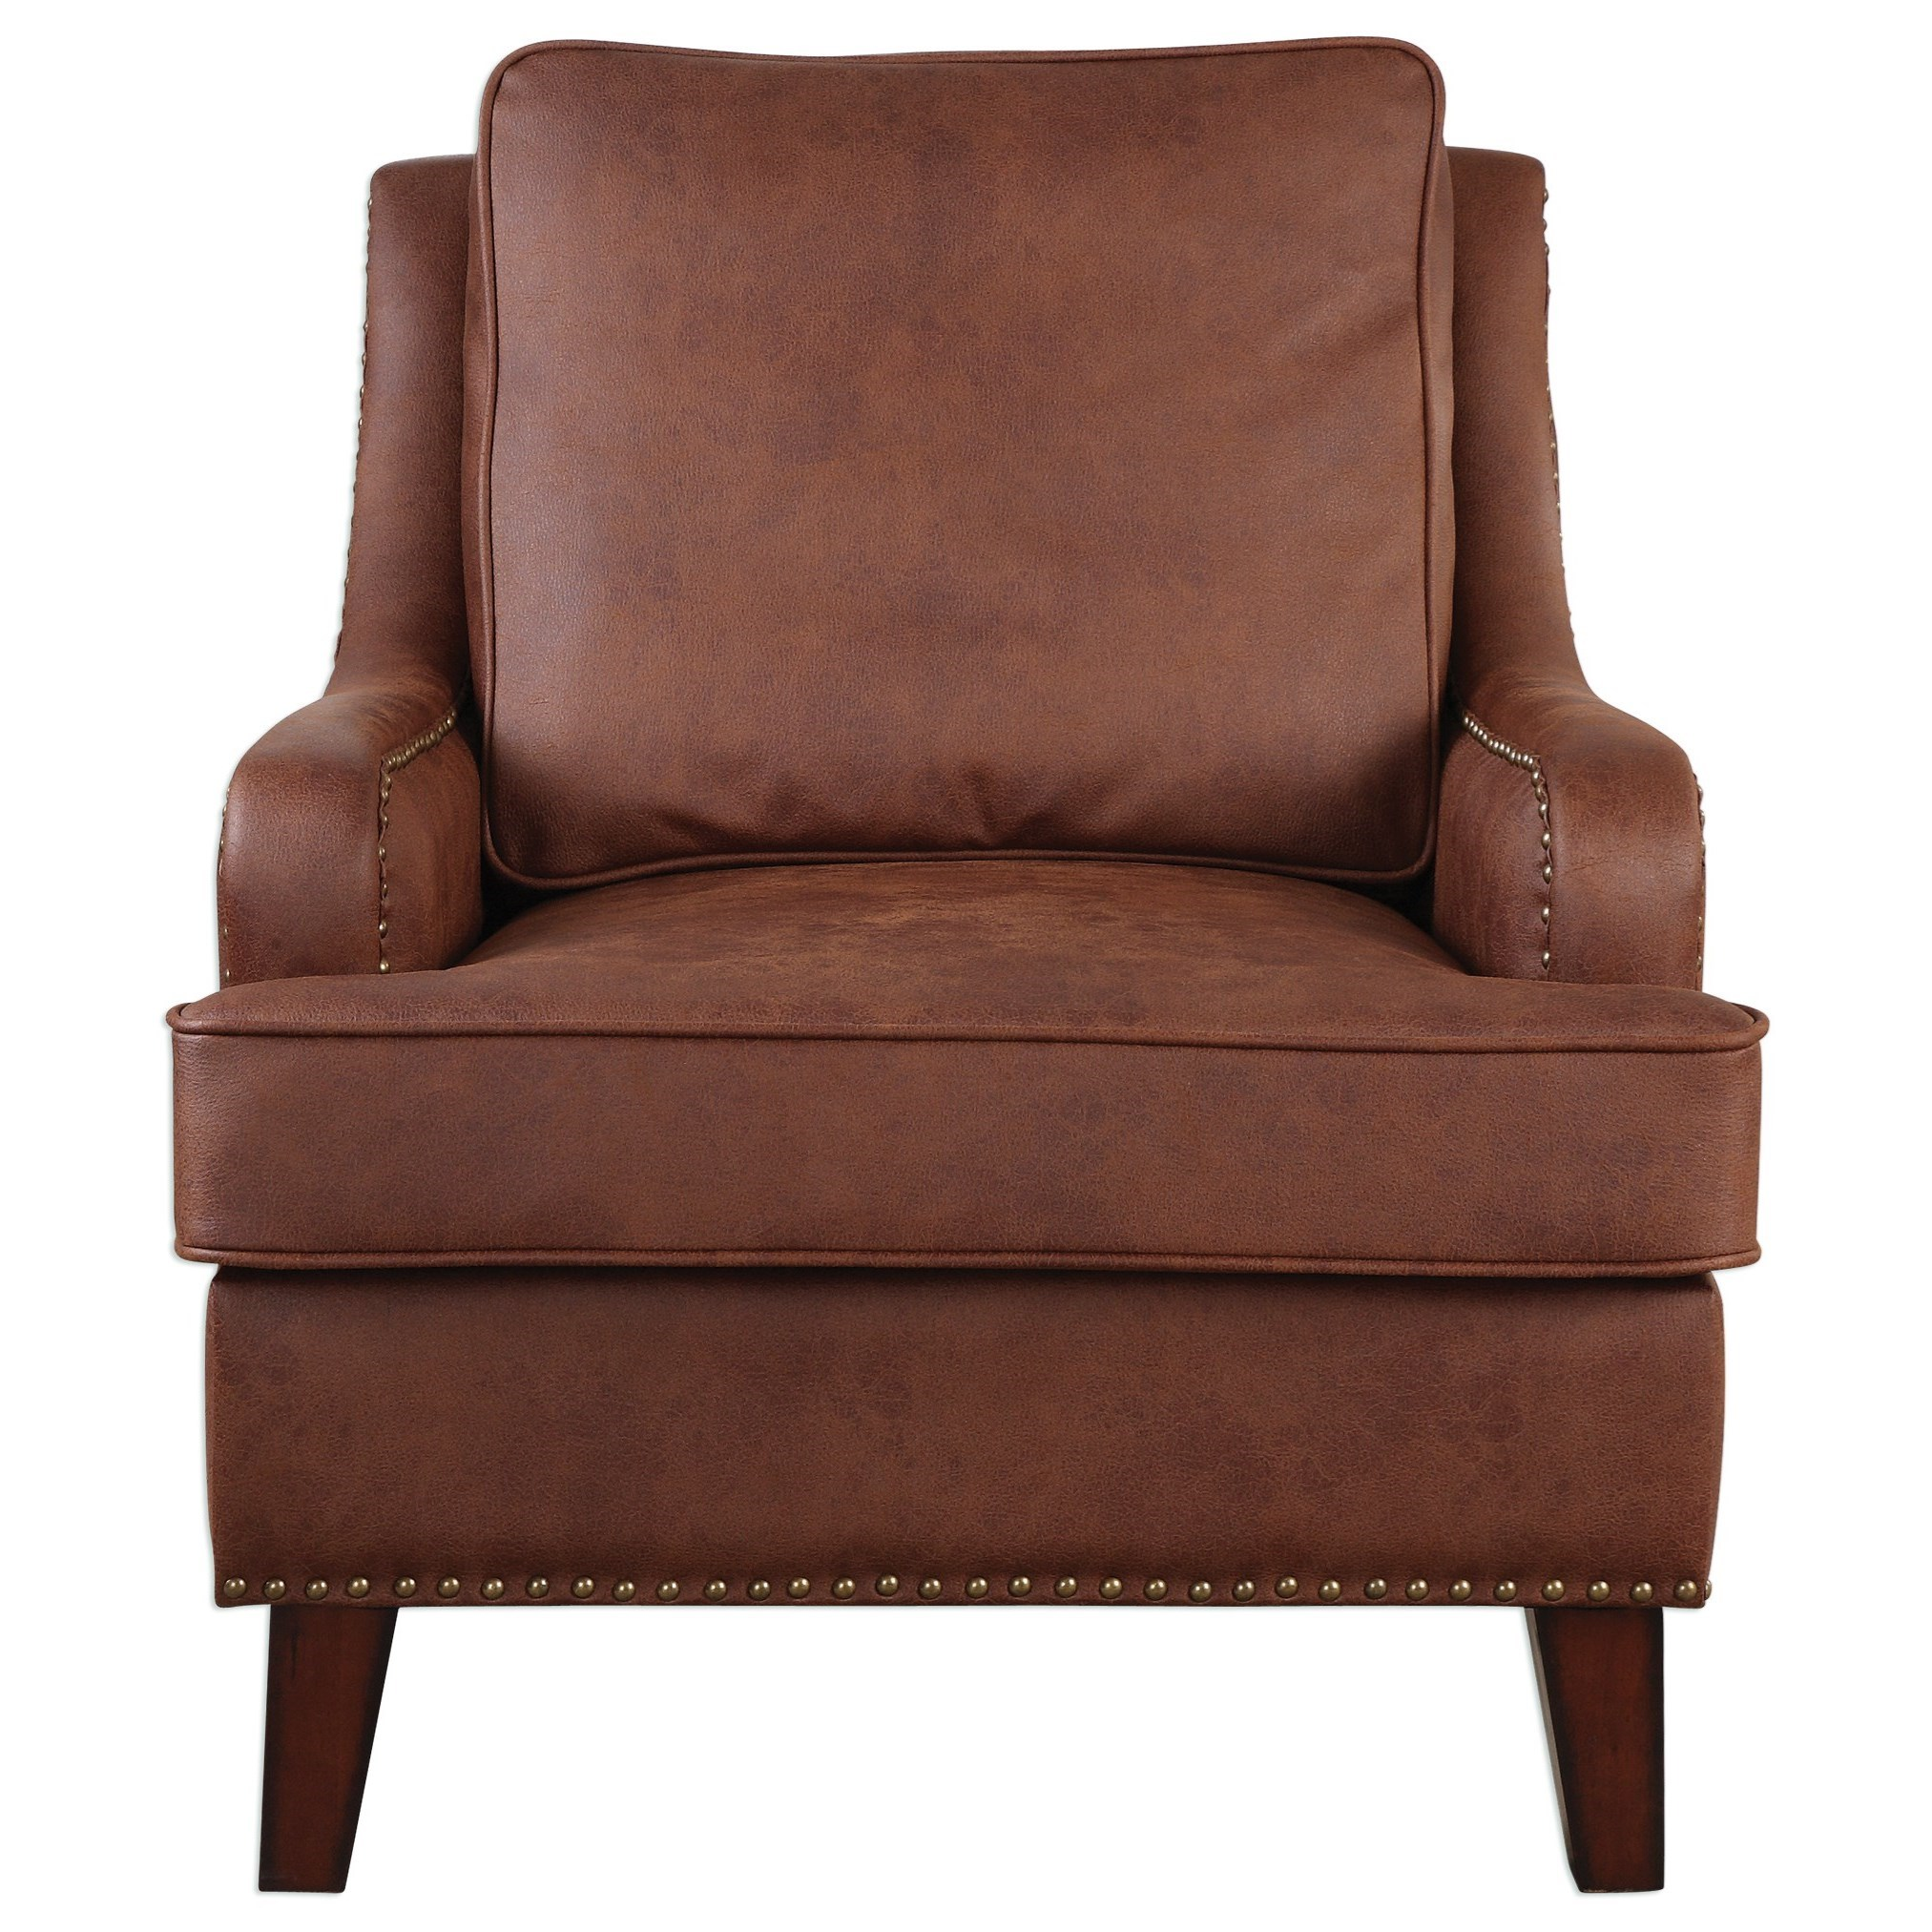 Uttermost Accent Furniture  Henry Tanned Leather Arm Chair - Item Number: 23336